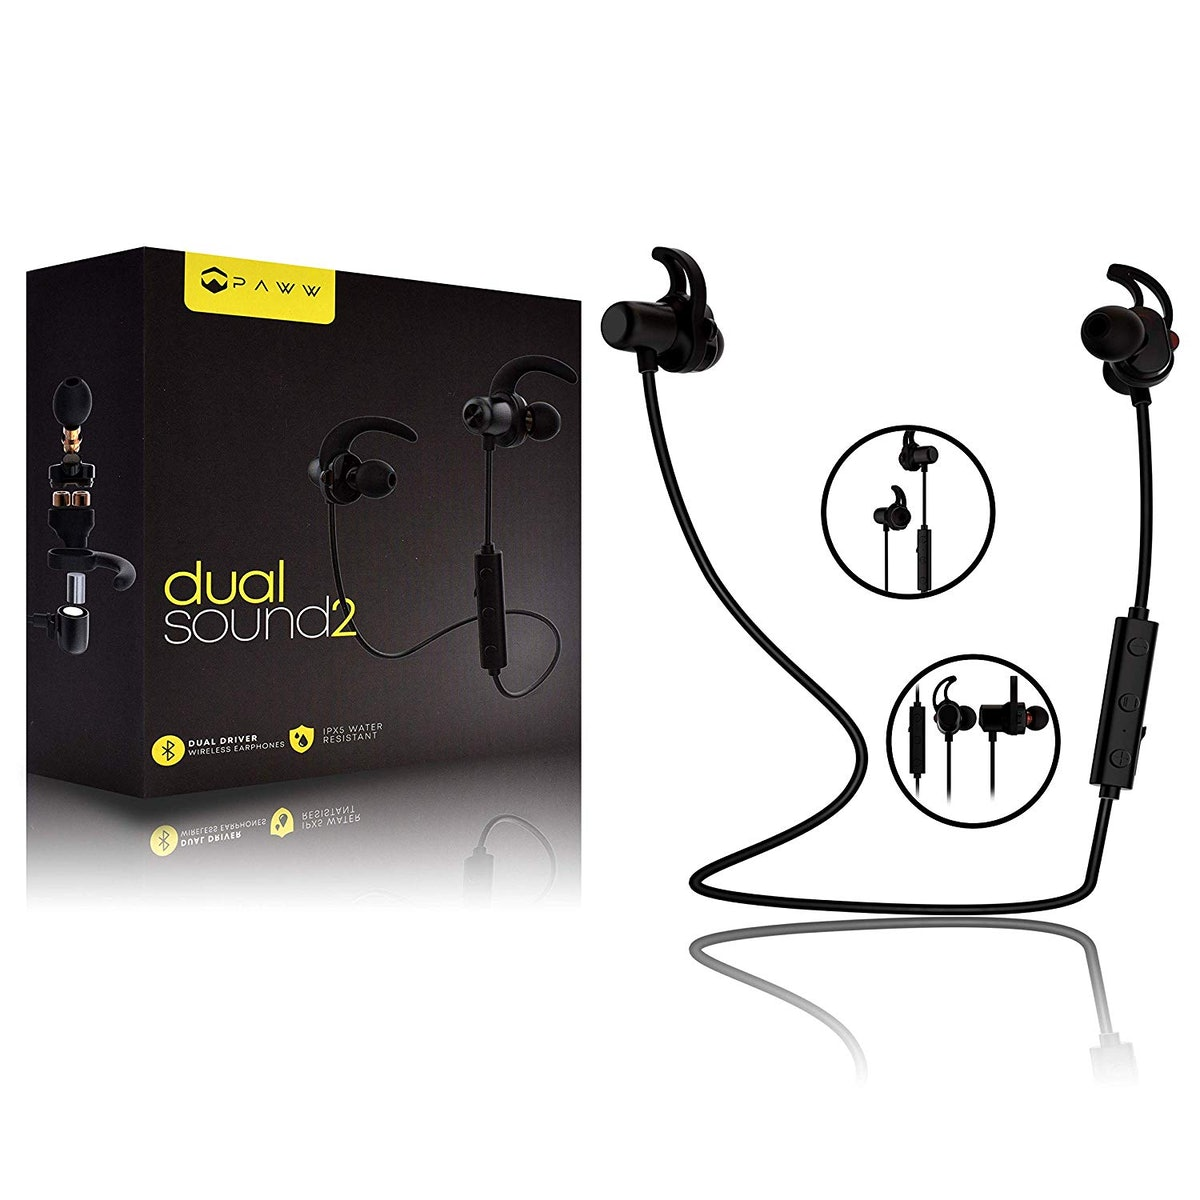 Paww DualSound 2 - Dual Driver - IPX5 Water Resistant - Sweatproof Neck Band - Bluetooth 5.0 in-Ear ...